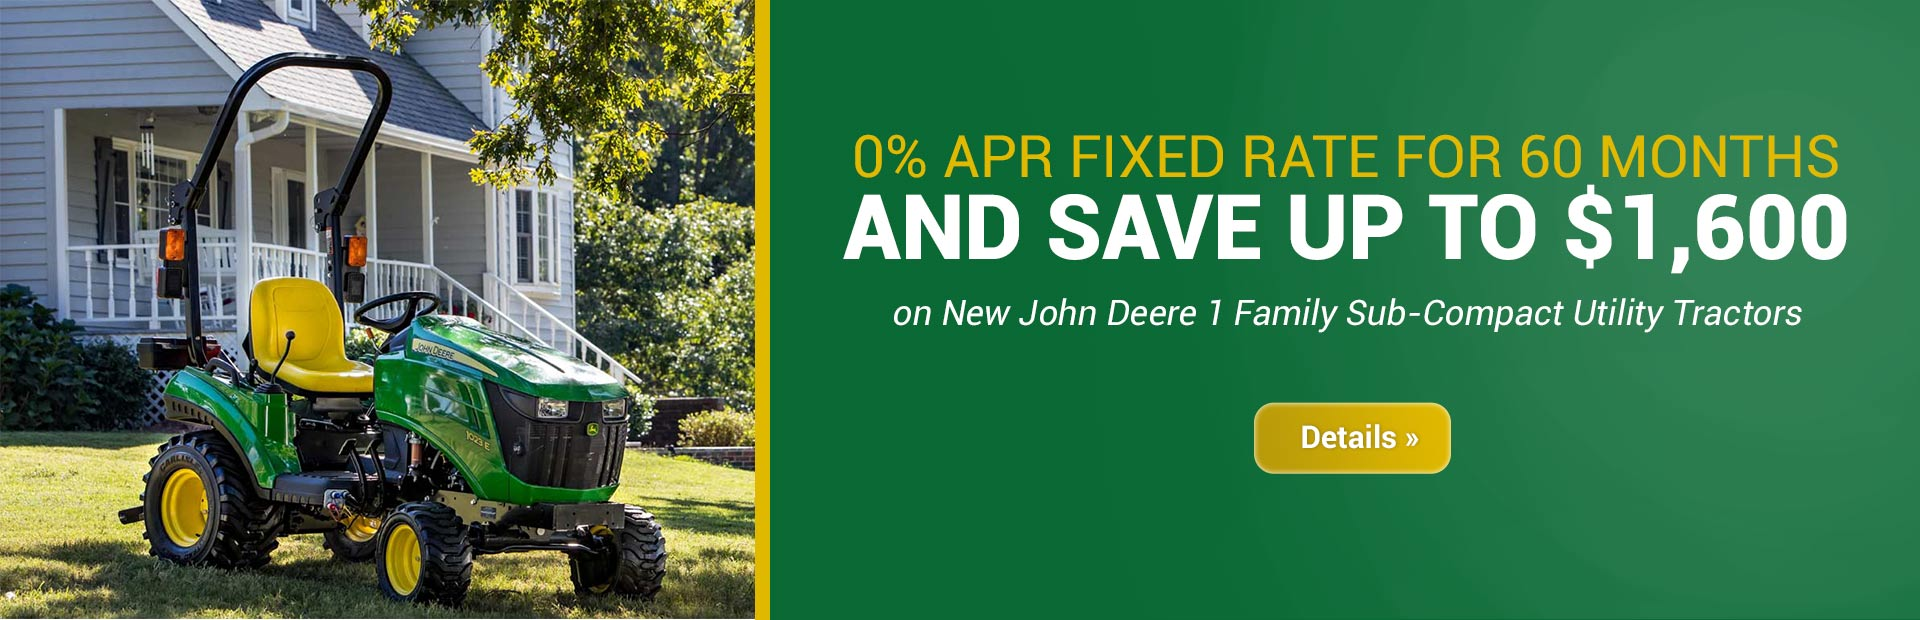 0% APR Fixed Rate for 60 Months AND Save Up to $1,600 on New John Deere 1 Family Sub-Compact Utility